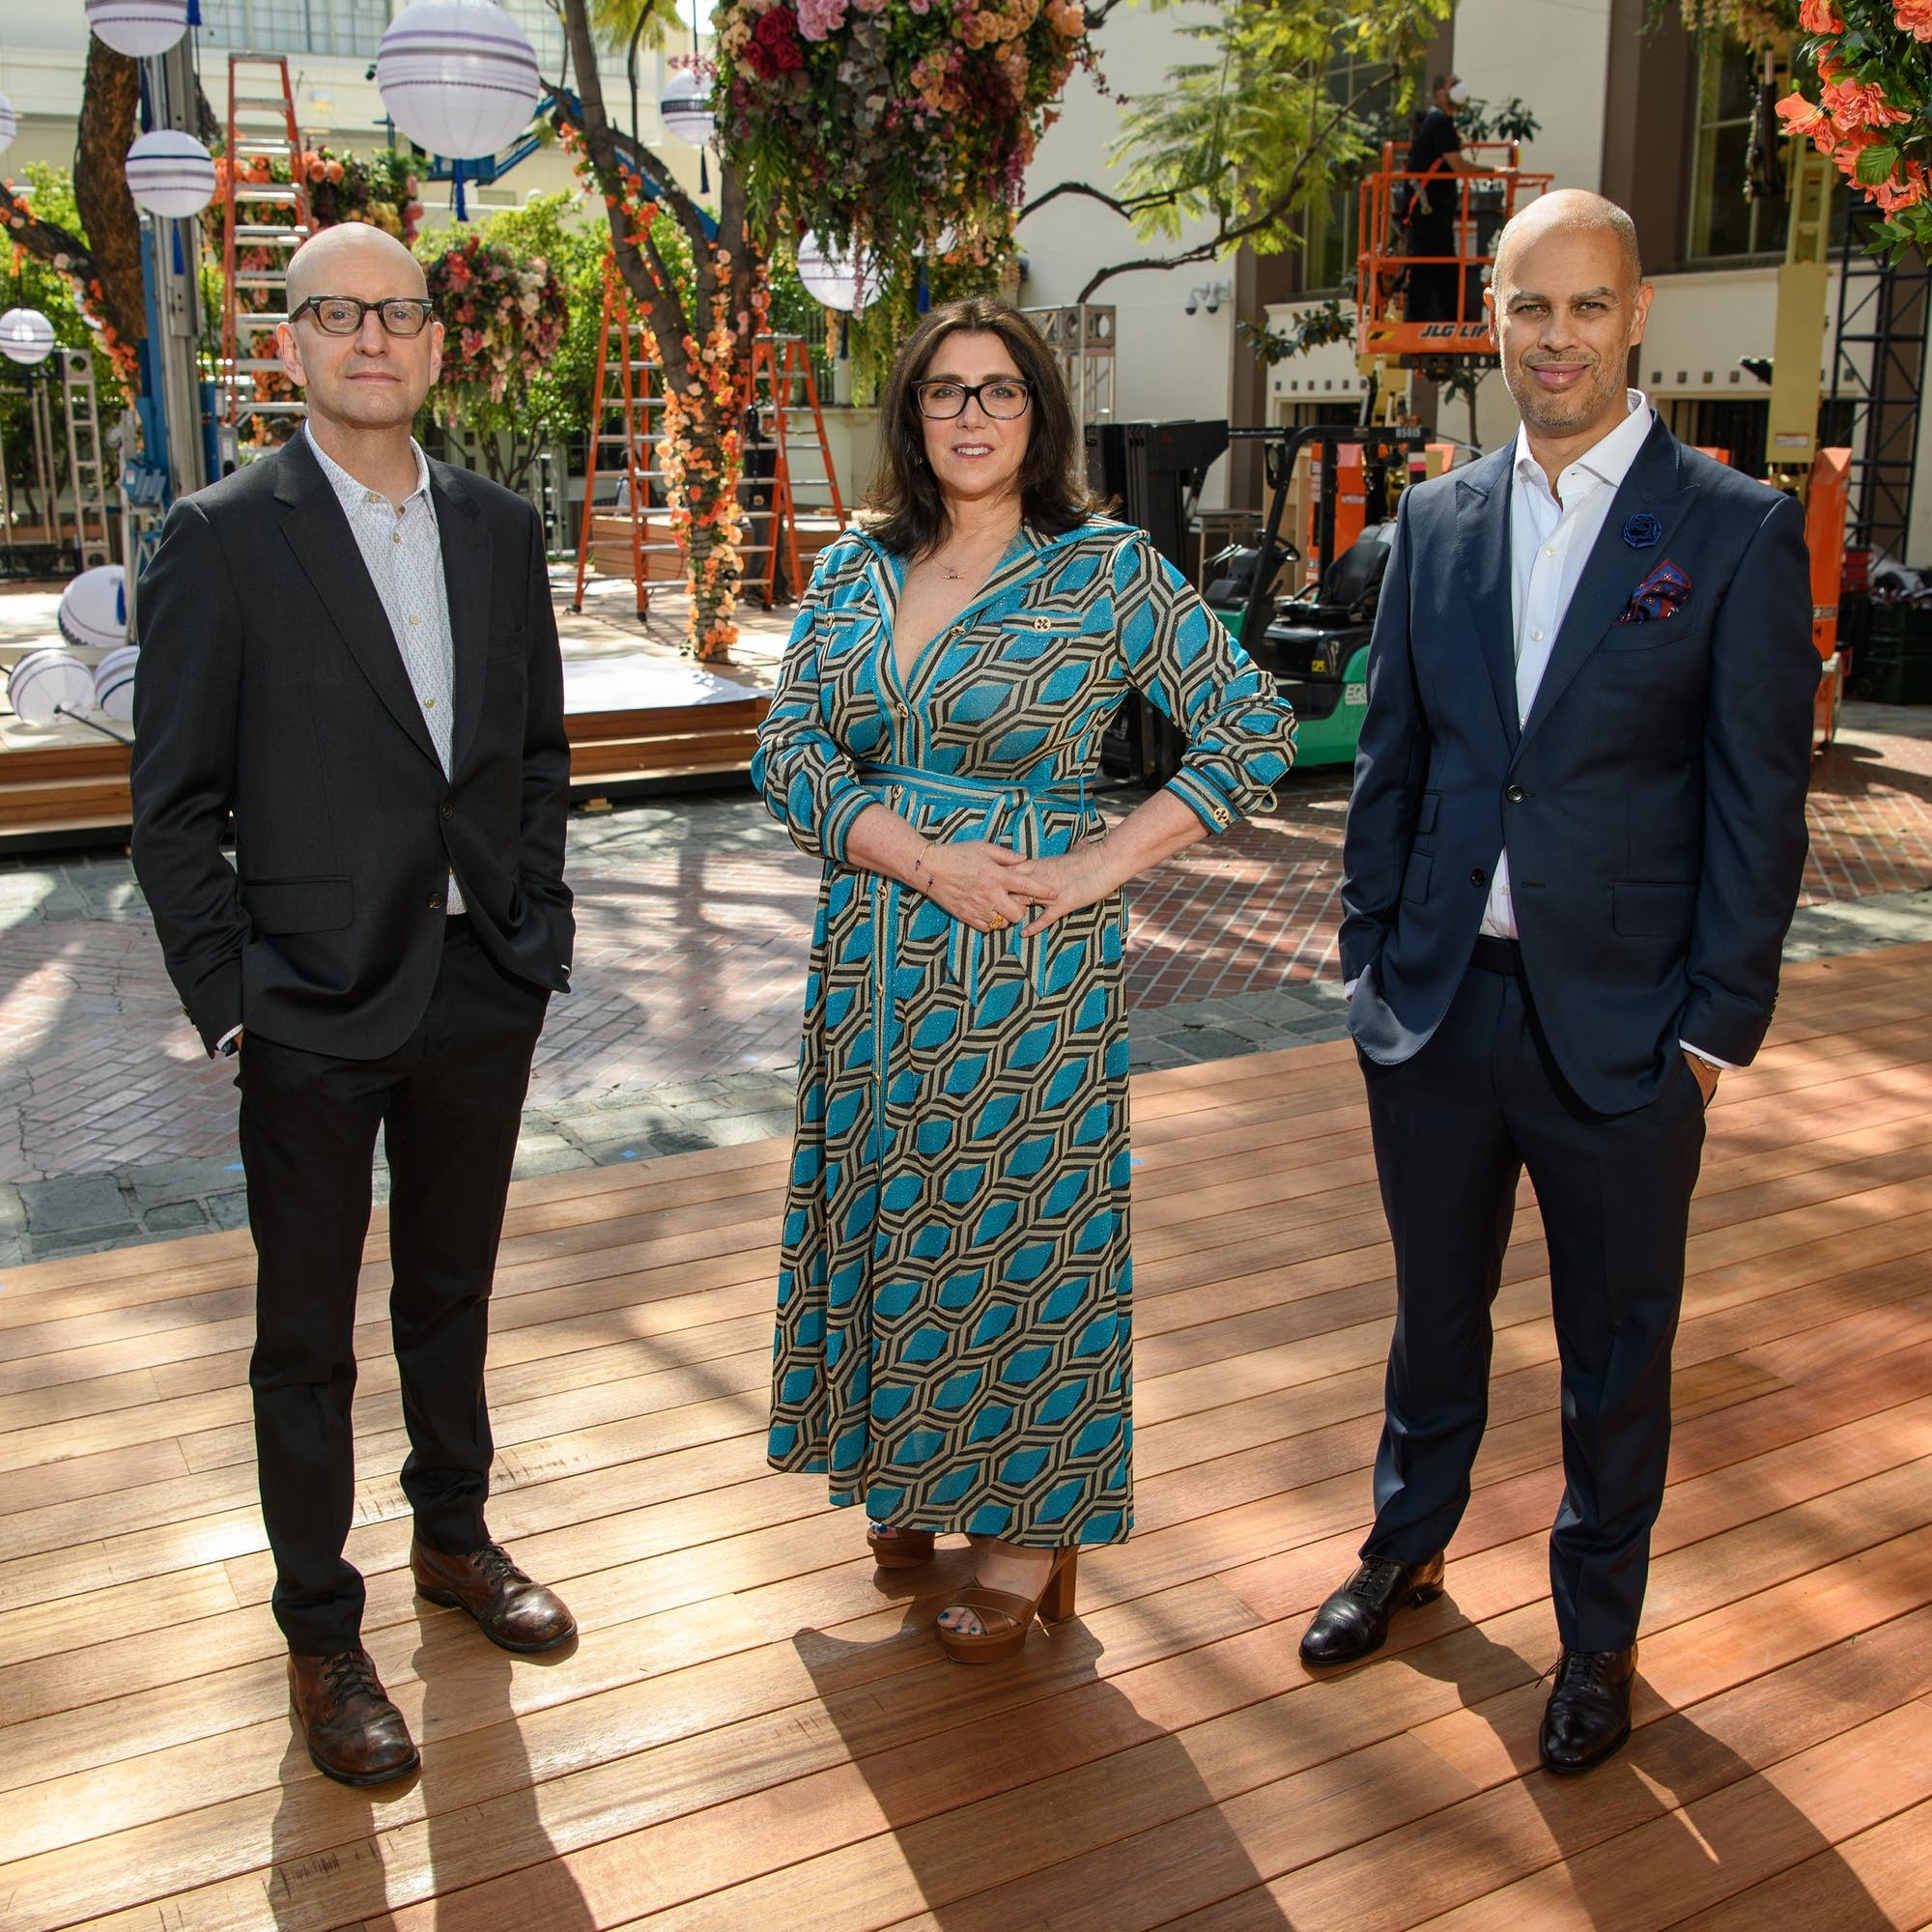 Steven Soderbergh, Stacey Sher and Jesse Collins